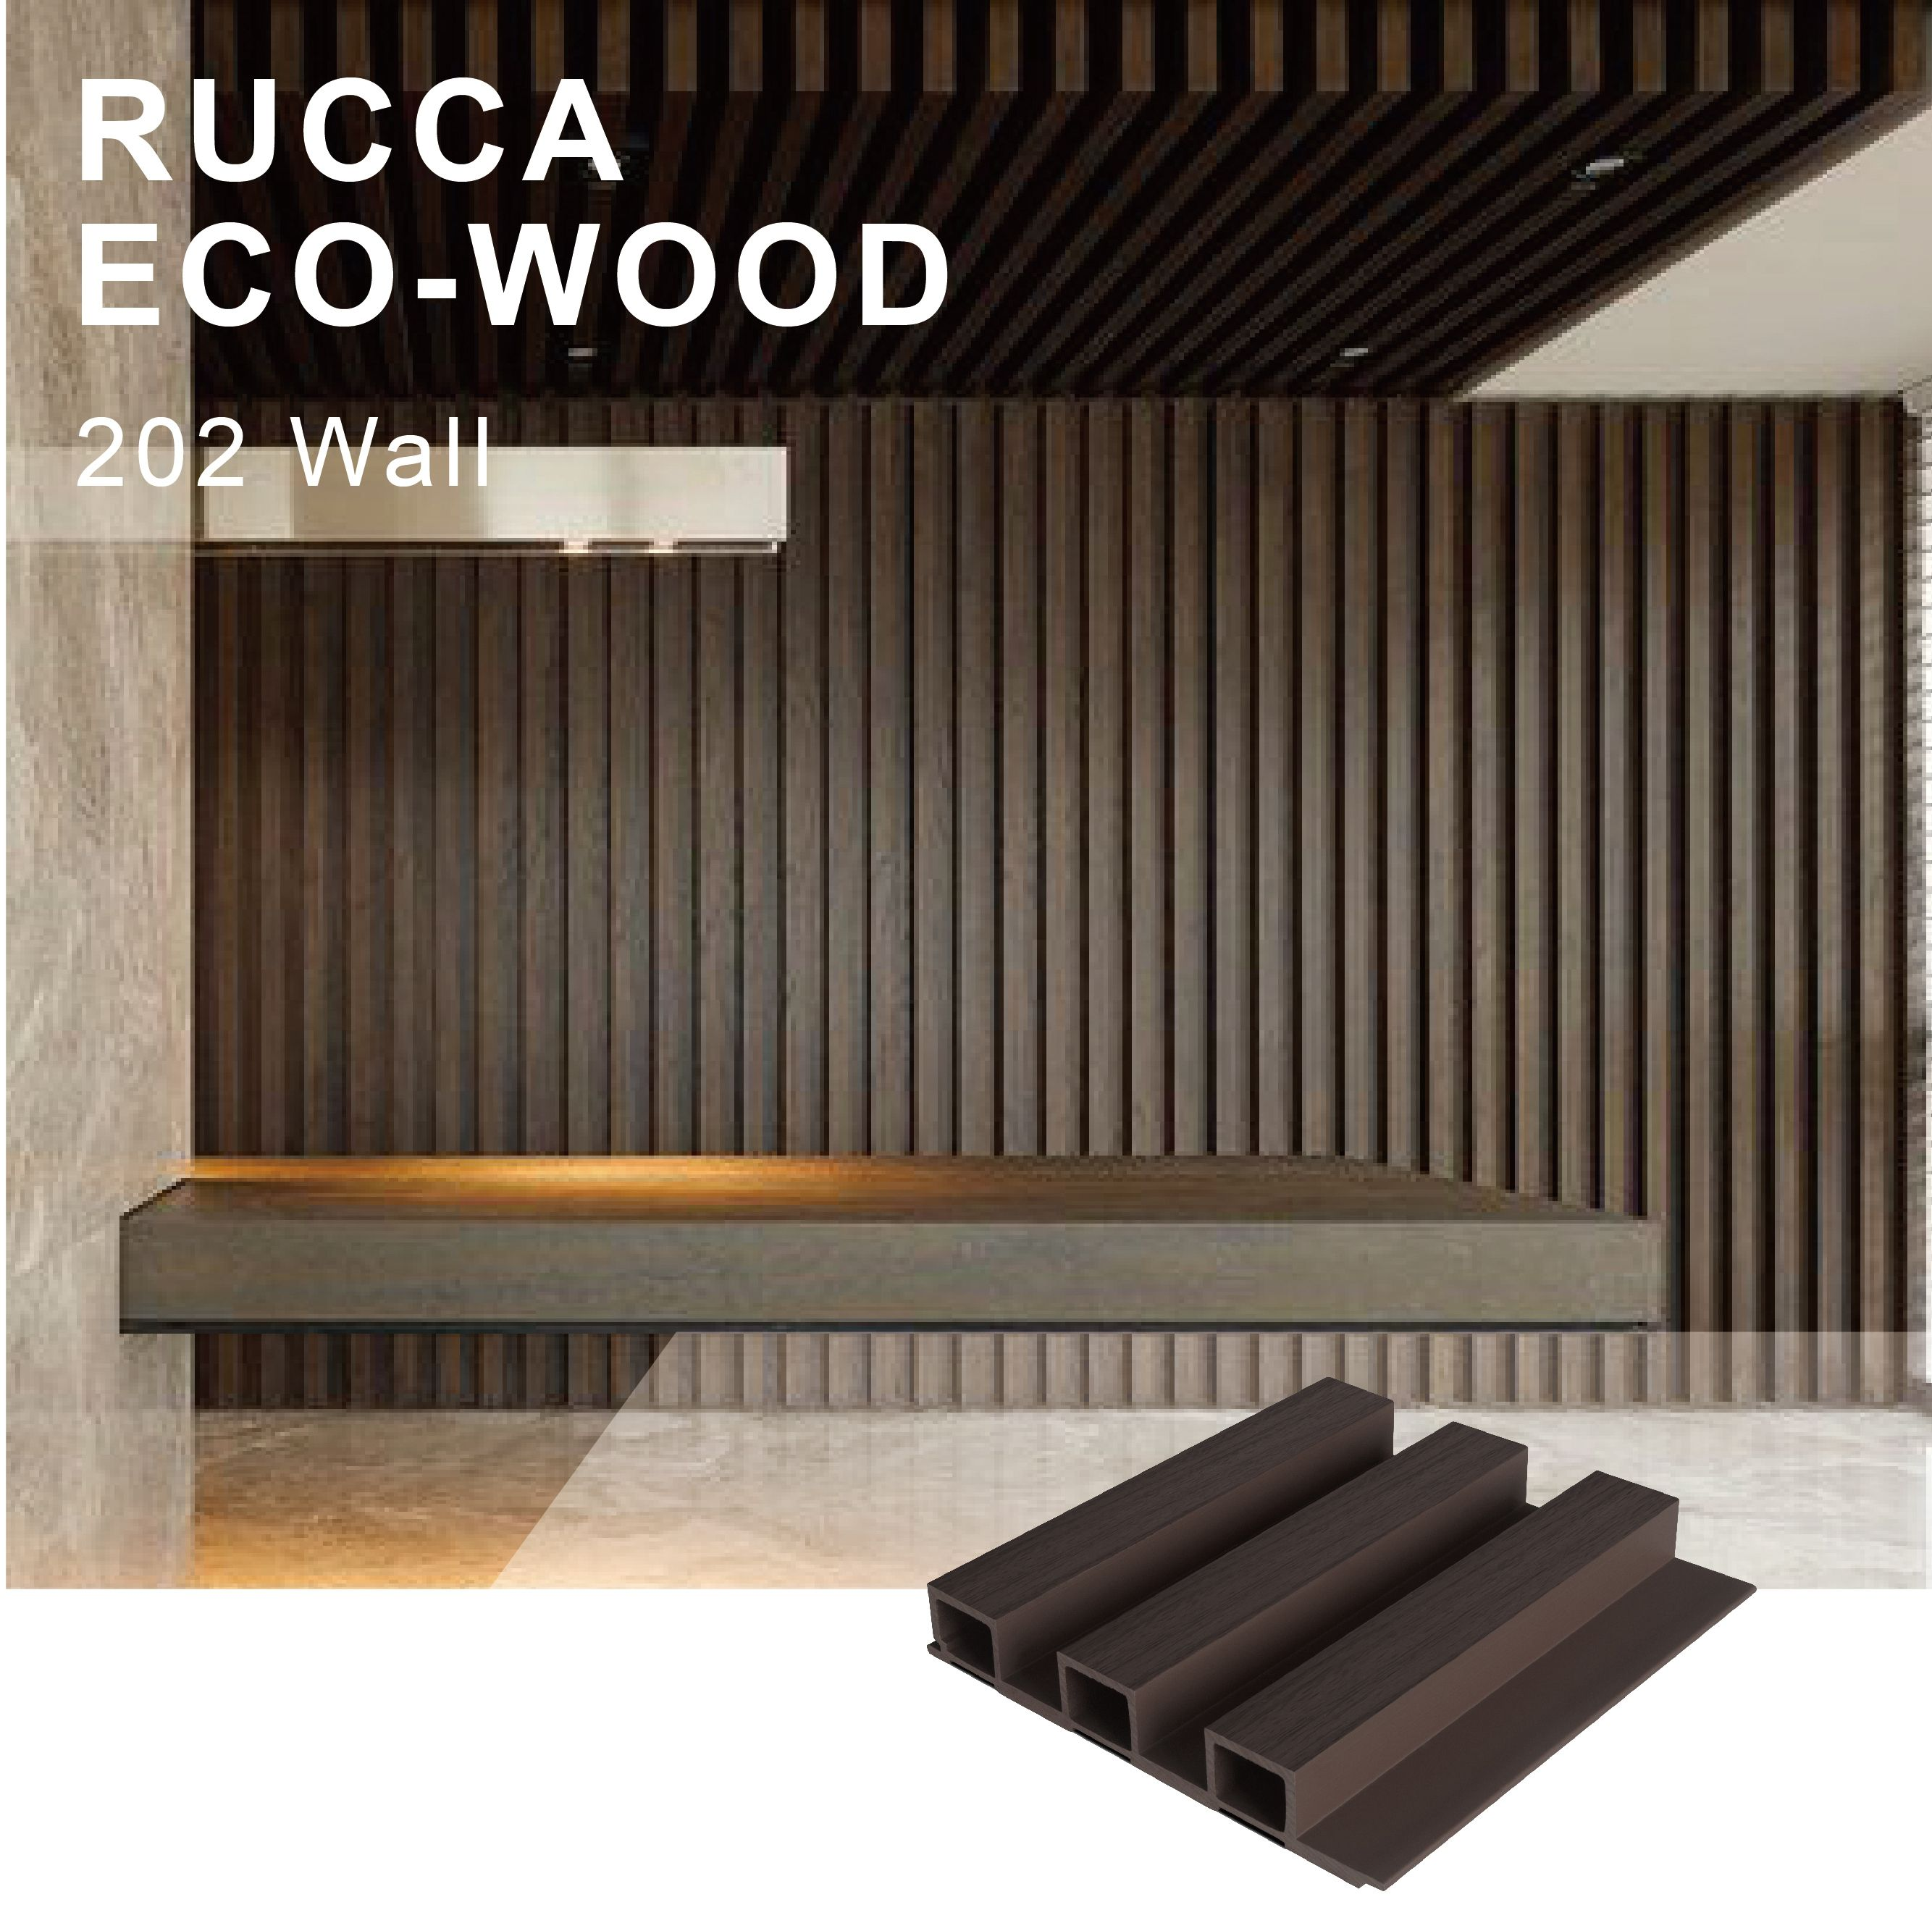 Rucca Wood Plastic Composite Faser Holz Wand paneel, hergestellt Home Wand paneele 202*30mm Innenwand dekorations material